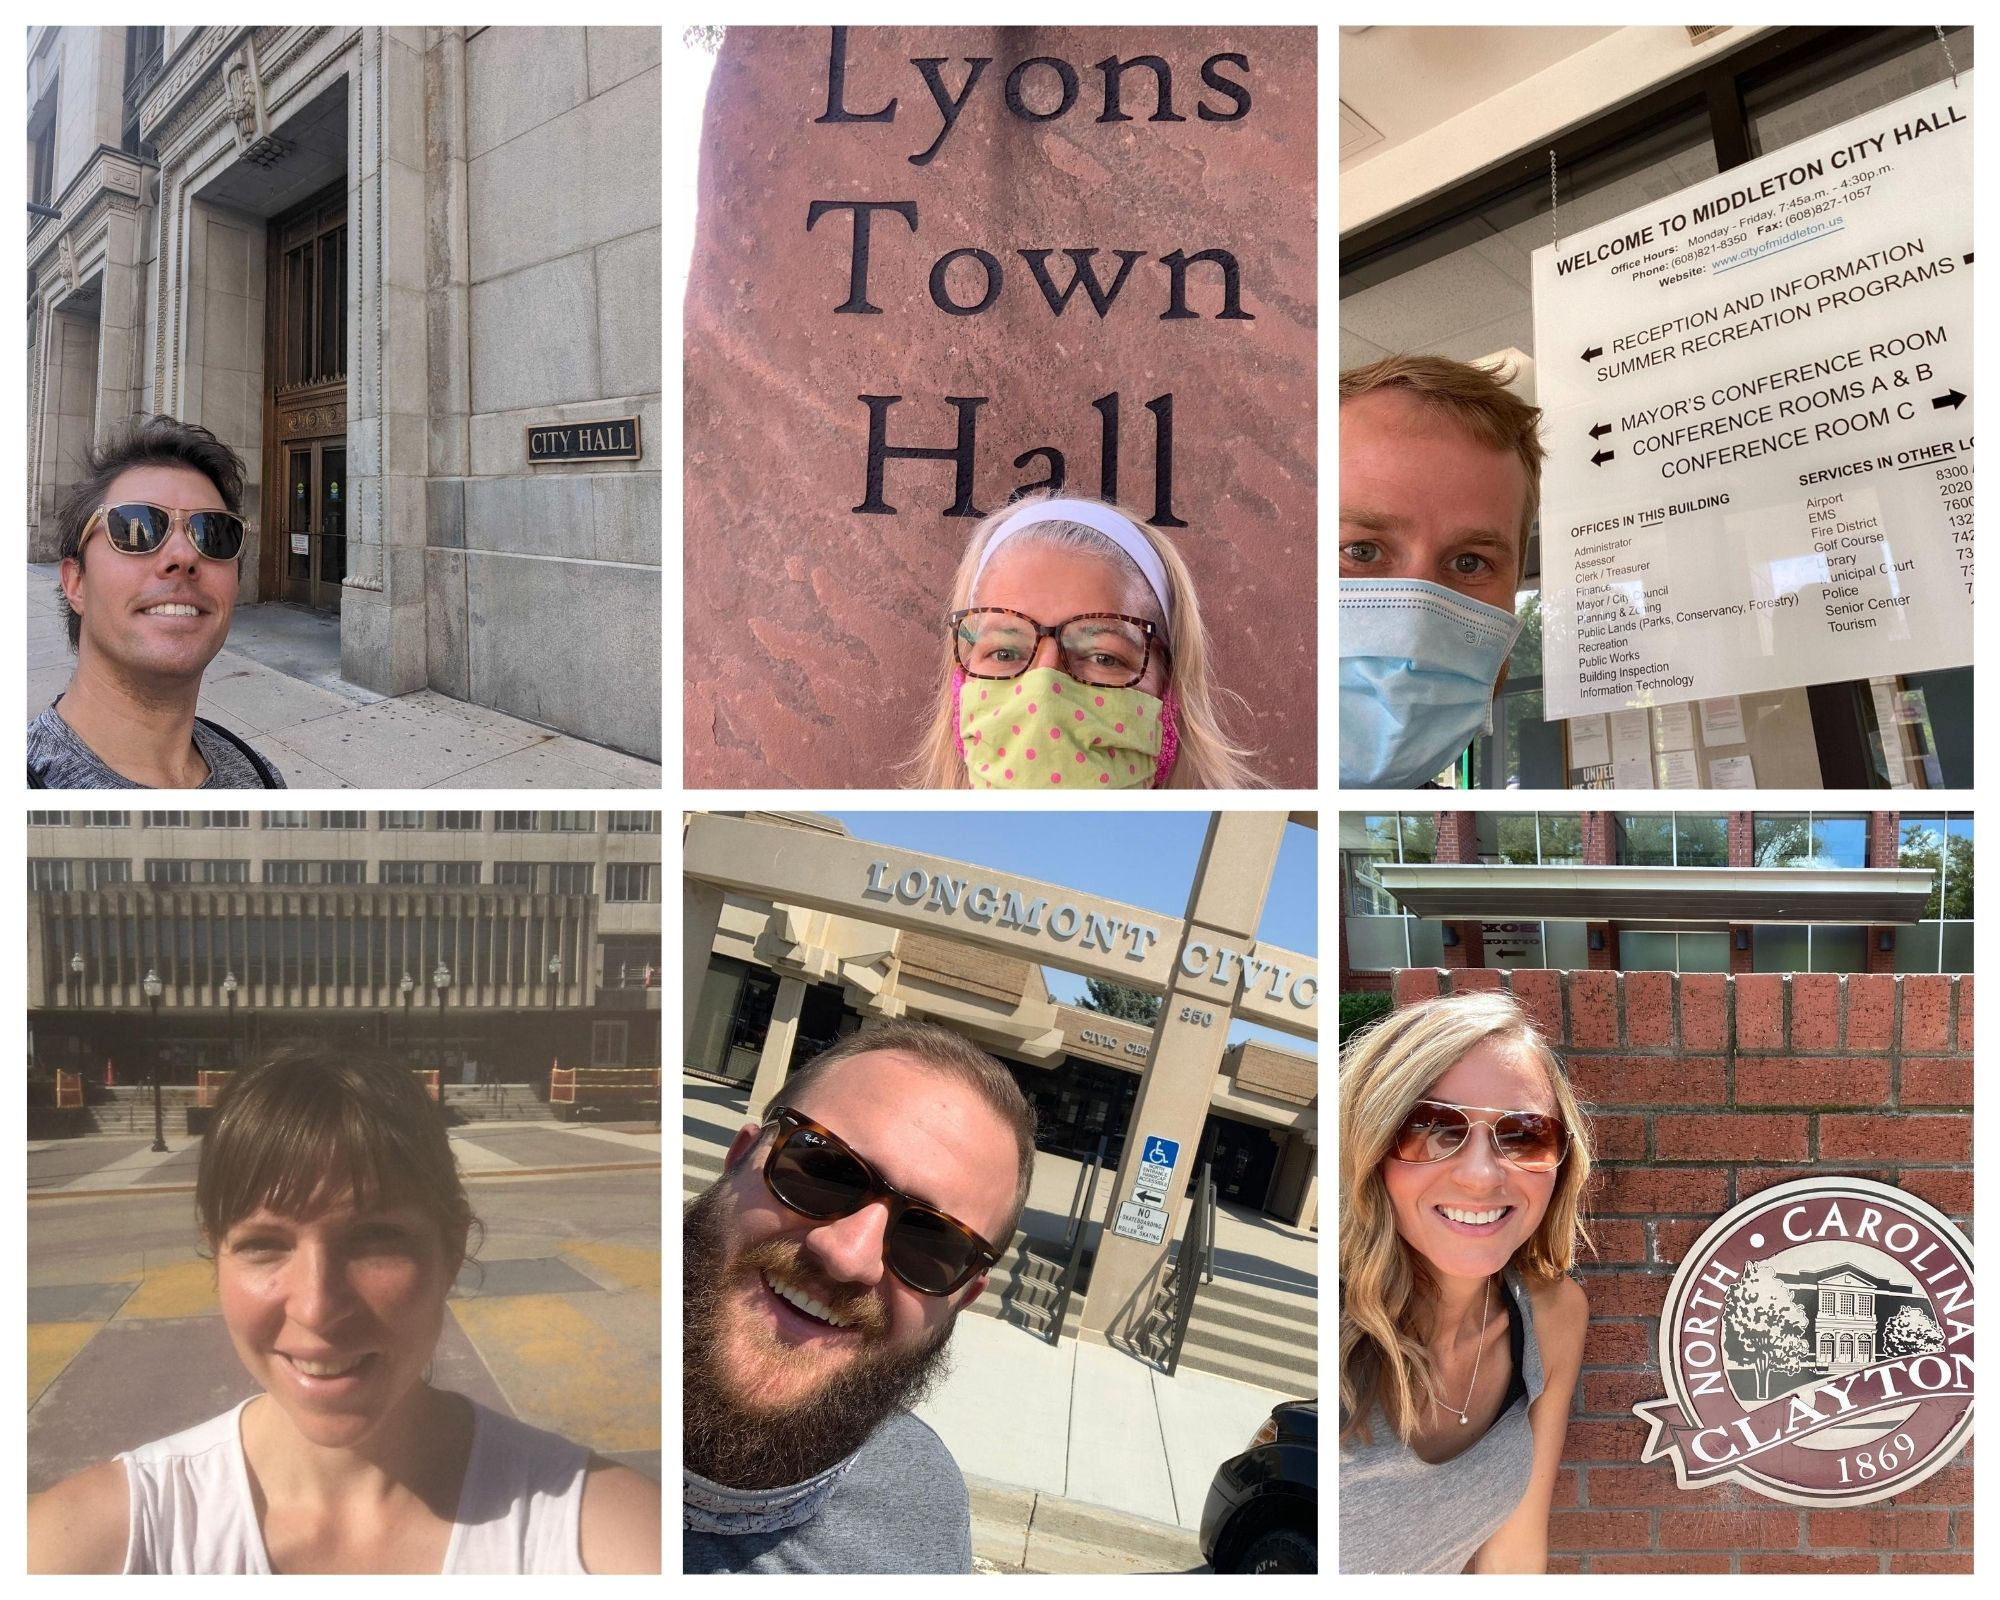 Civic Engagement Takes Center Stage on #CityHallSelfie Day